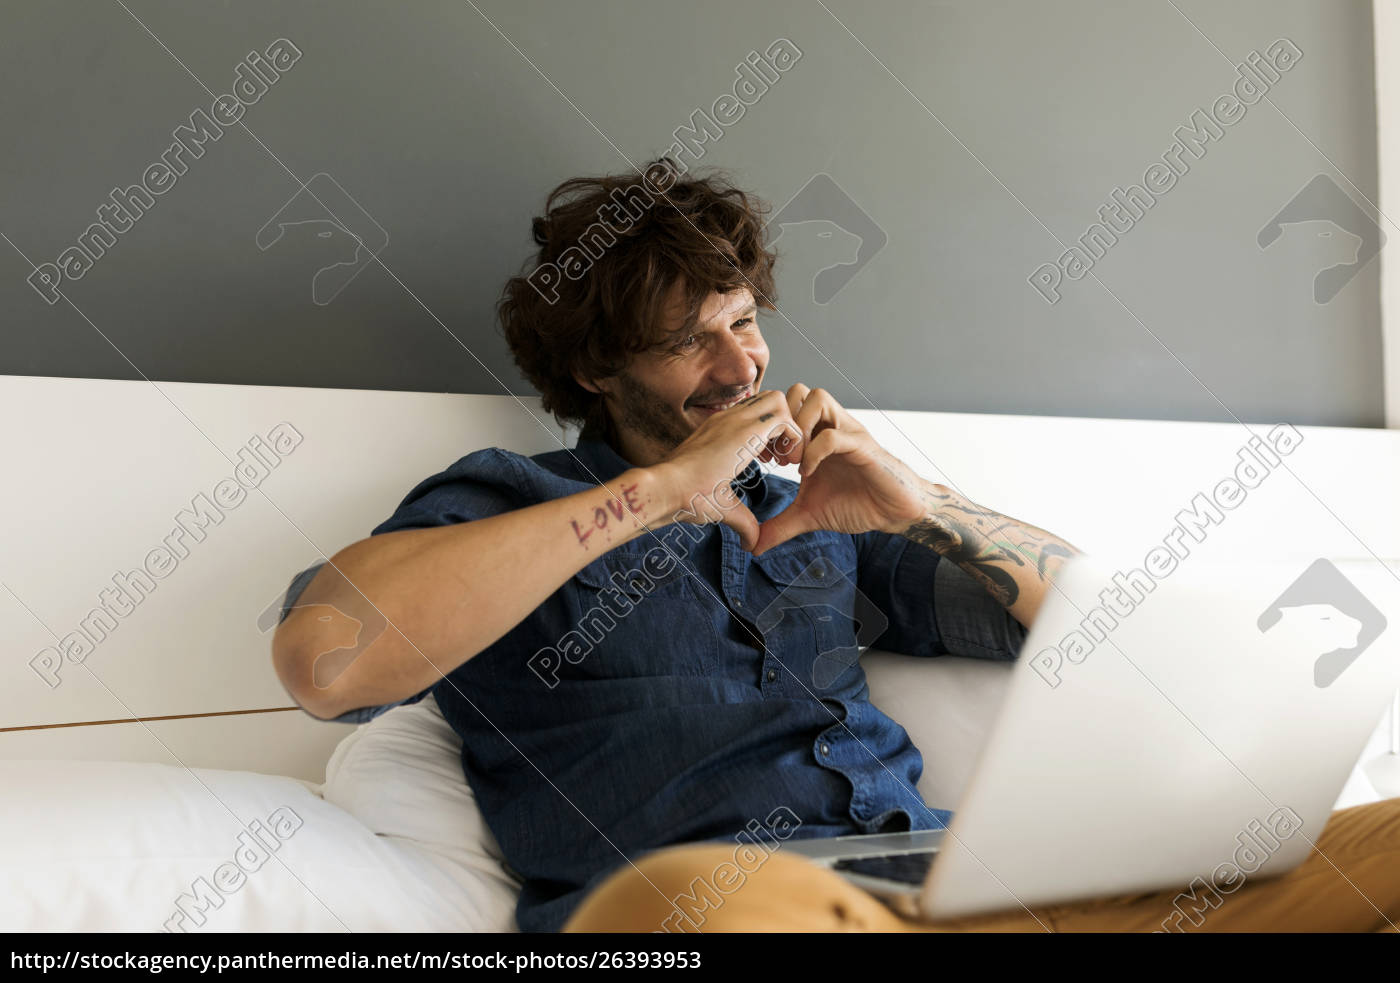 happy, tattooed, man, with, laptop, chatting - 26393953